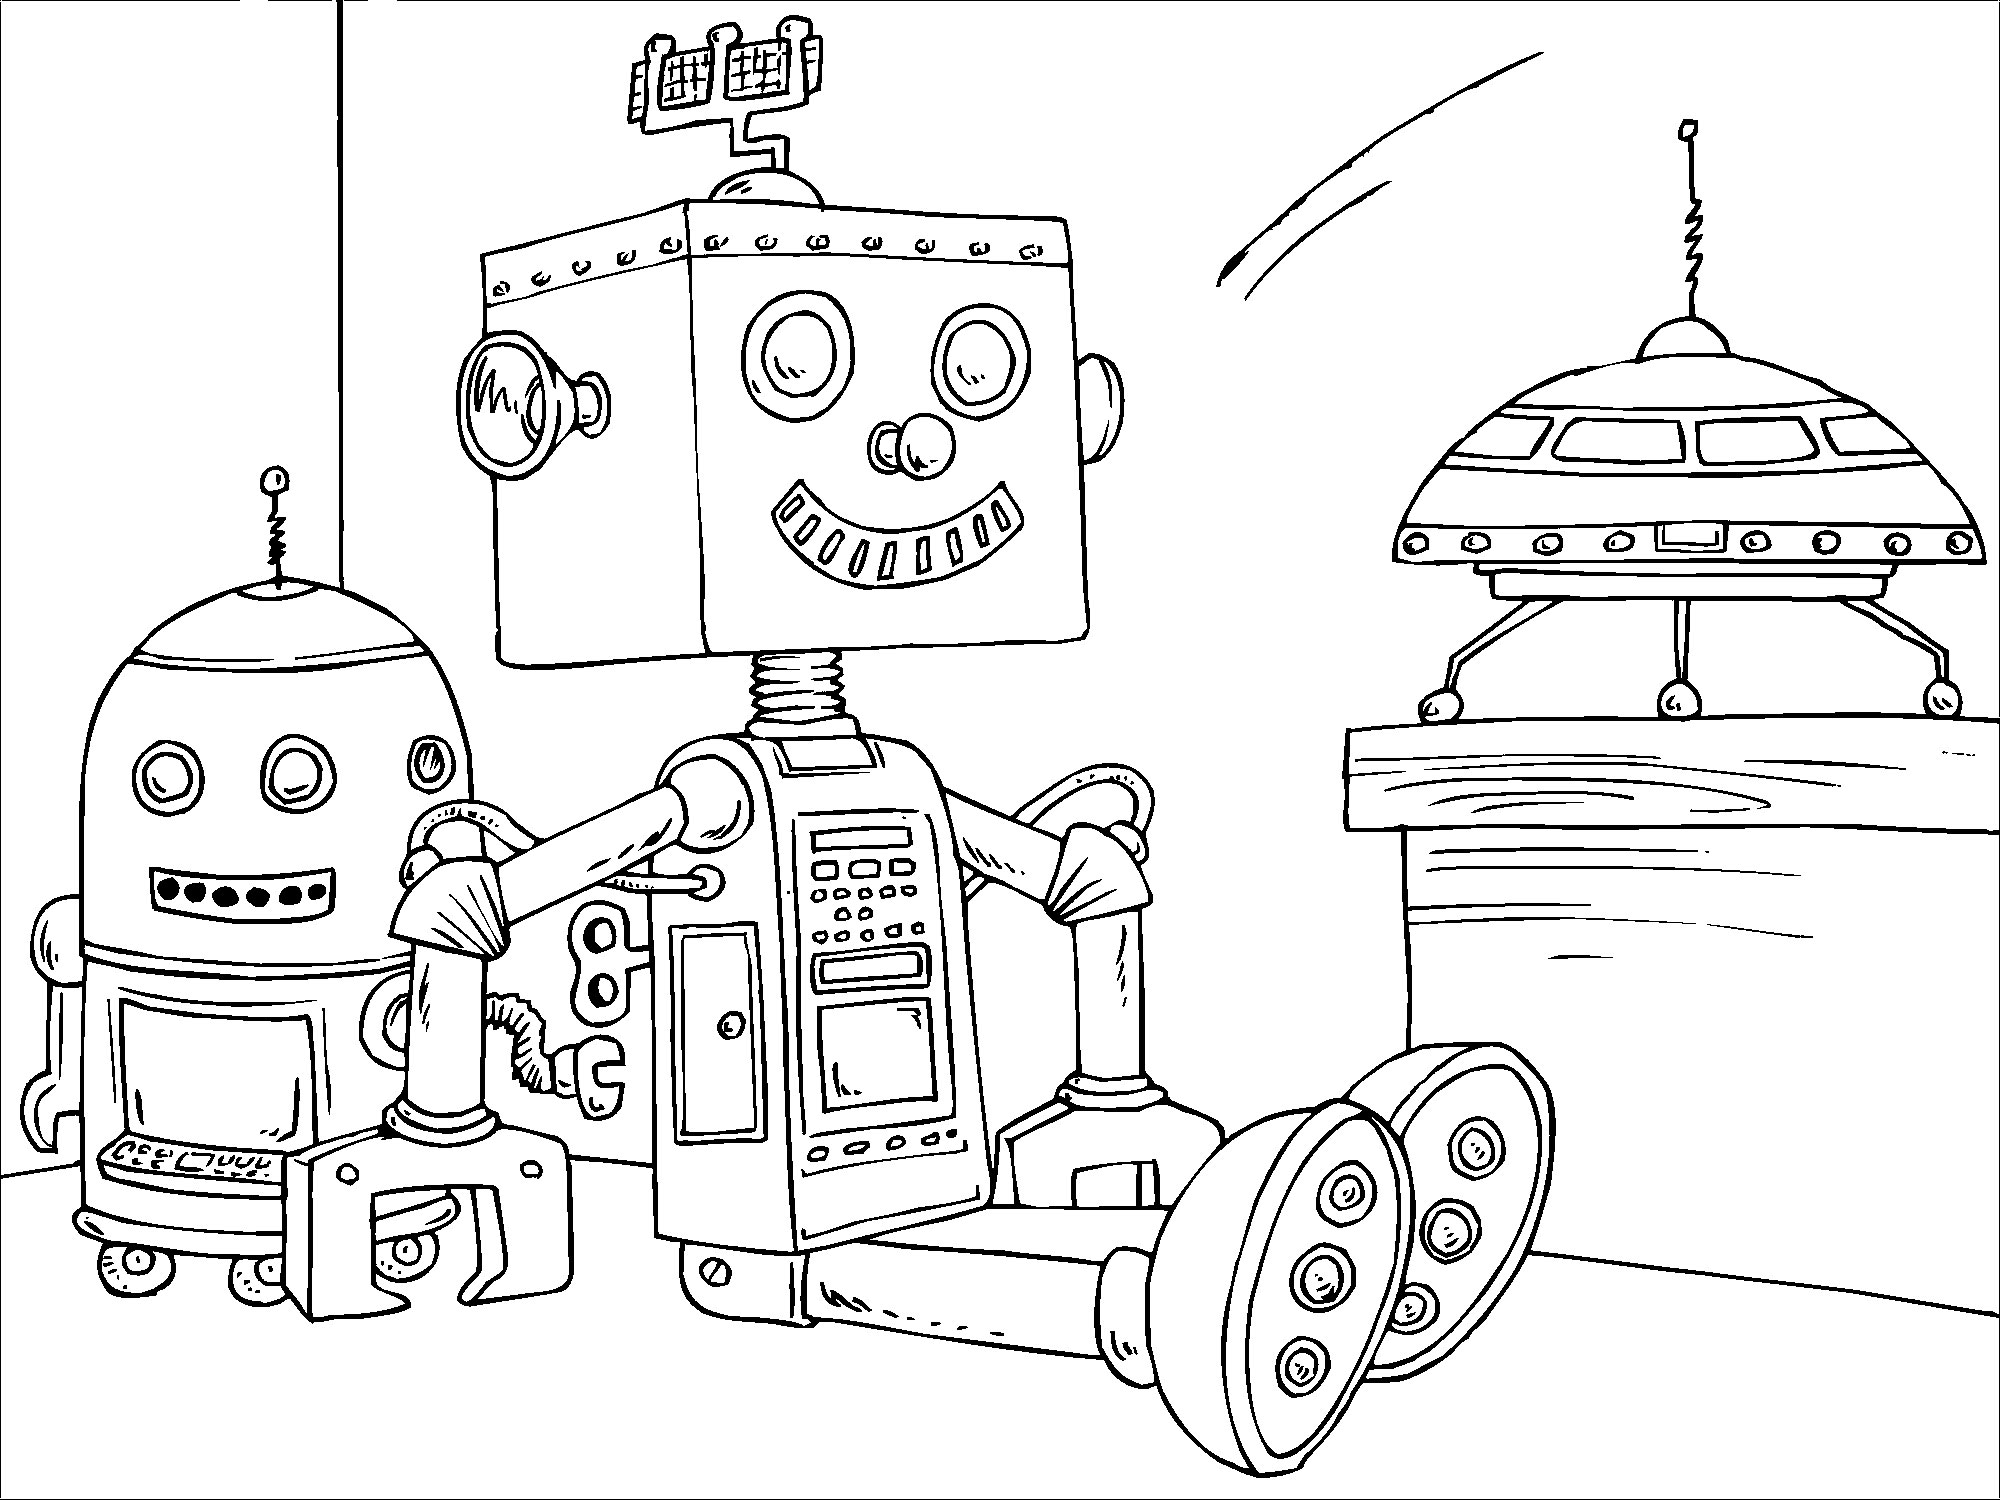 Coloring pictures robot - Free Printable Robot Coloring Pages